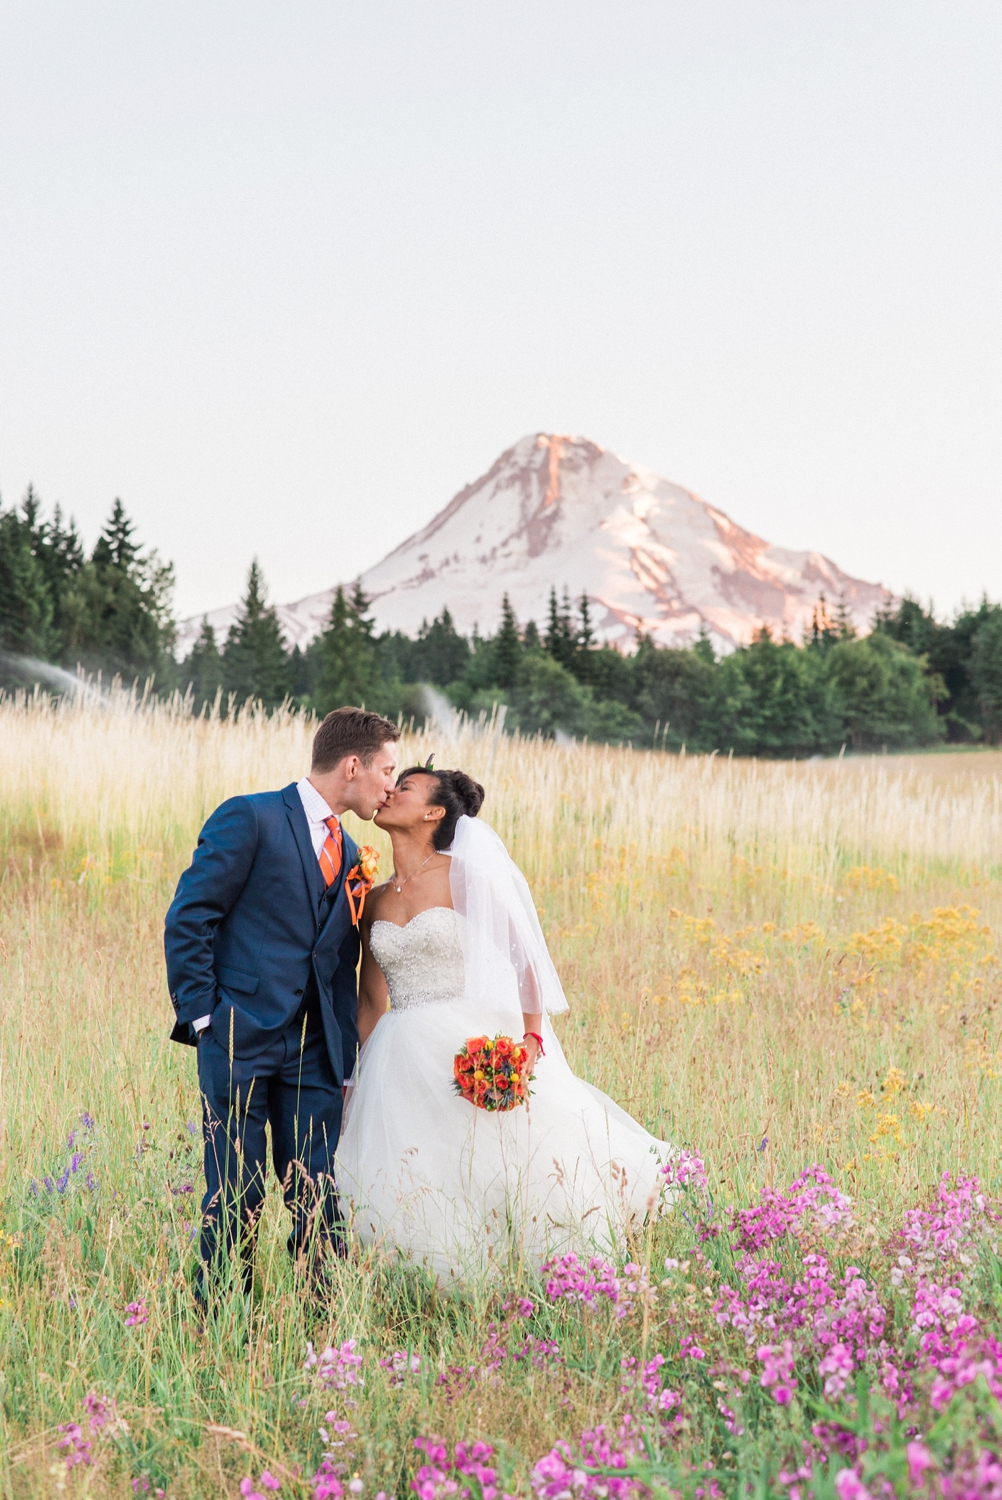 mount-hood-bnb-wedding-portland-oregon-sokhorn-jay-1320_cr.jpg